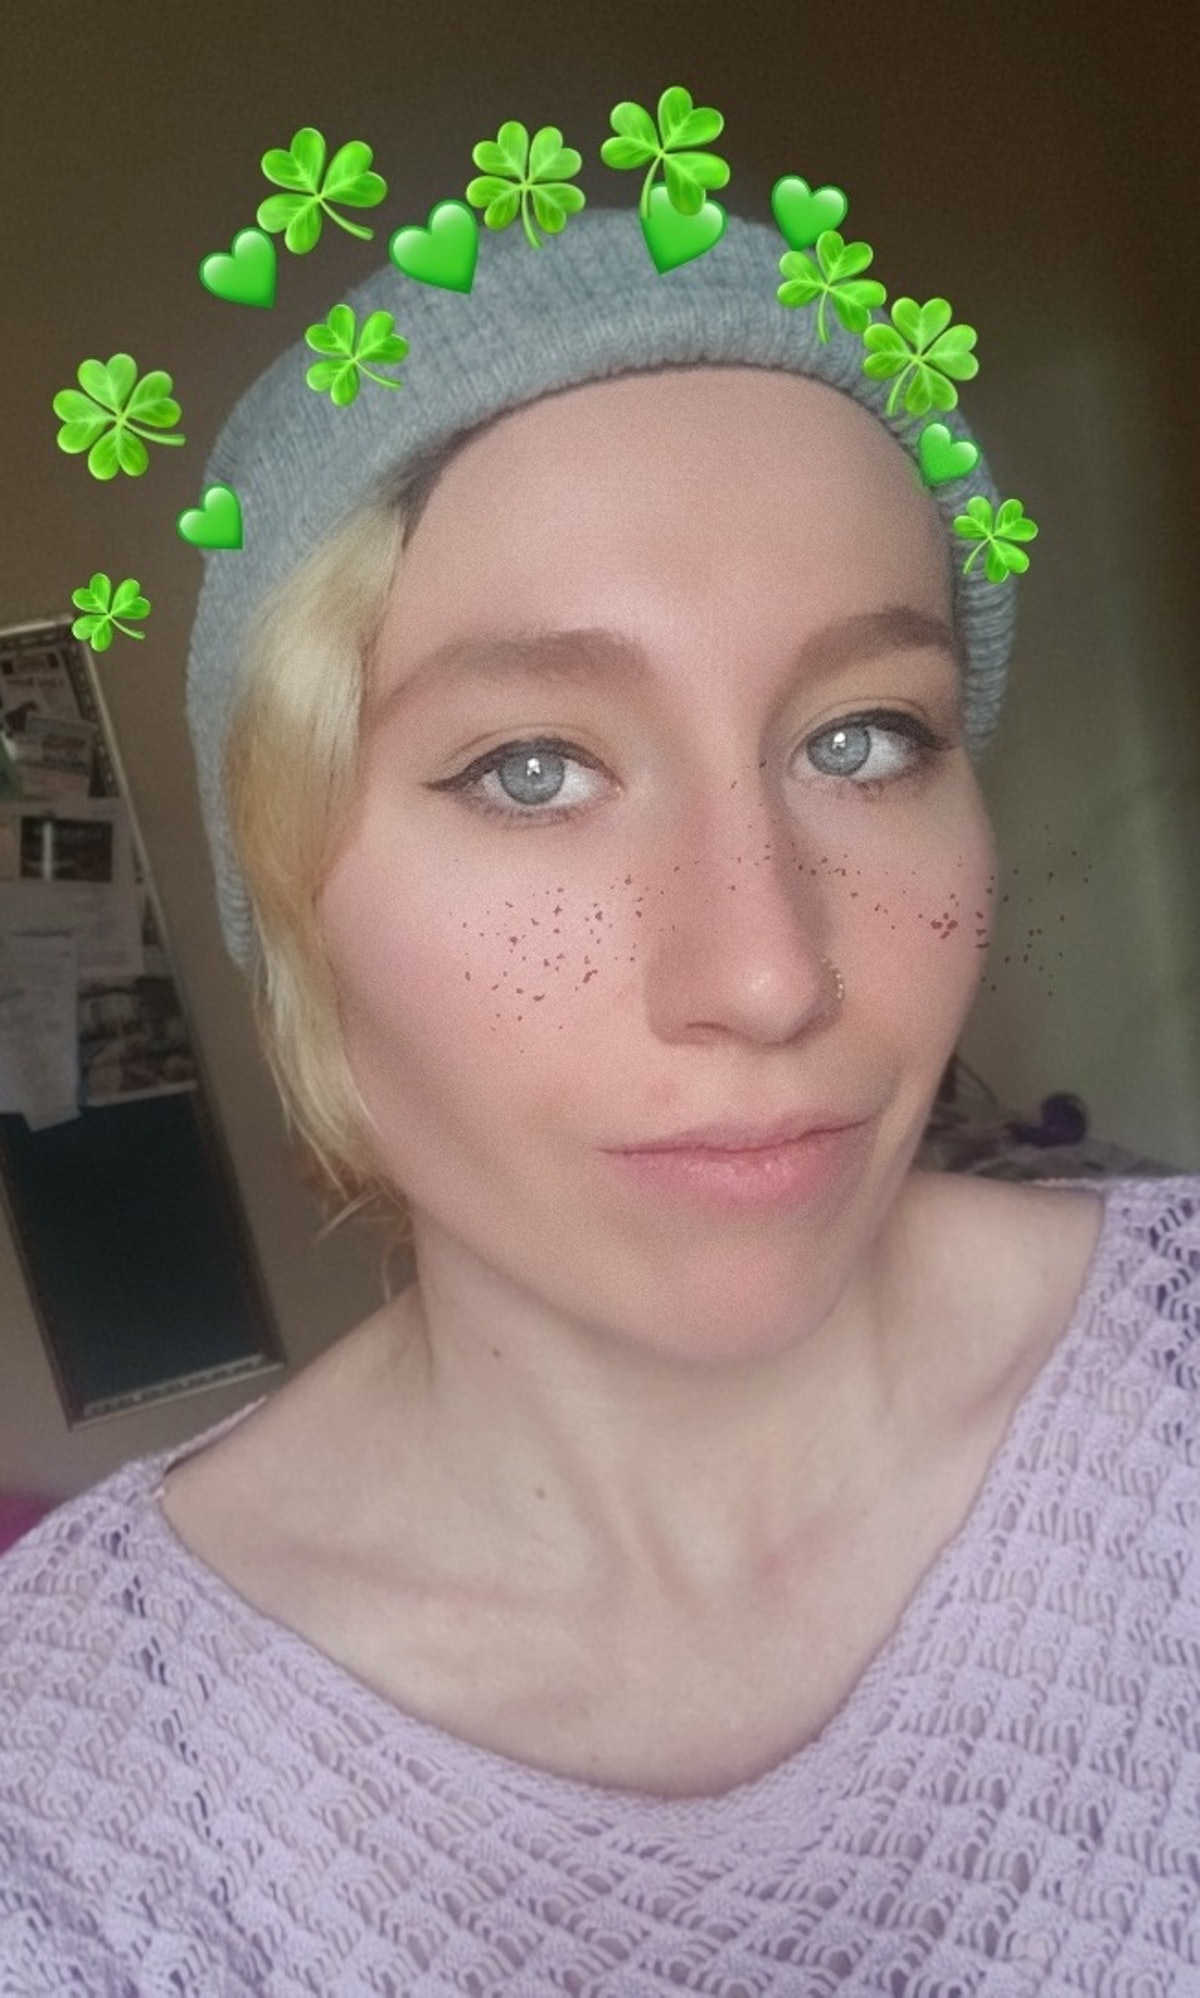 These are the best Snapchat Lenses for St. Patrick's Day 2020, so get snapping.